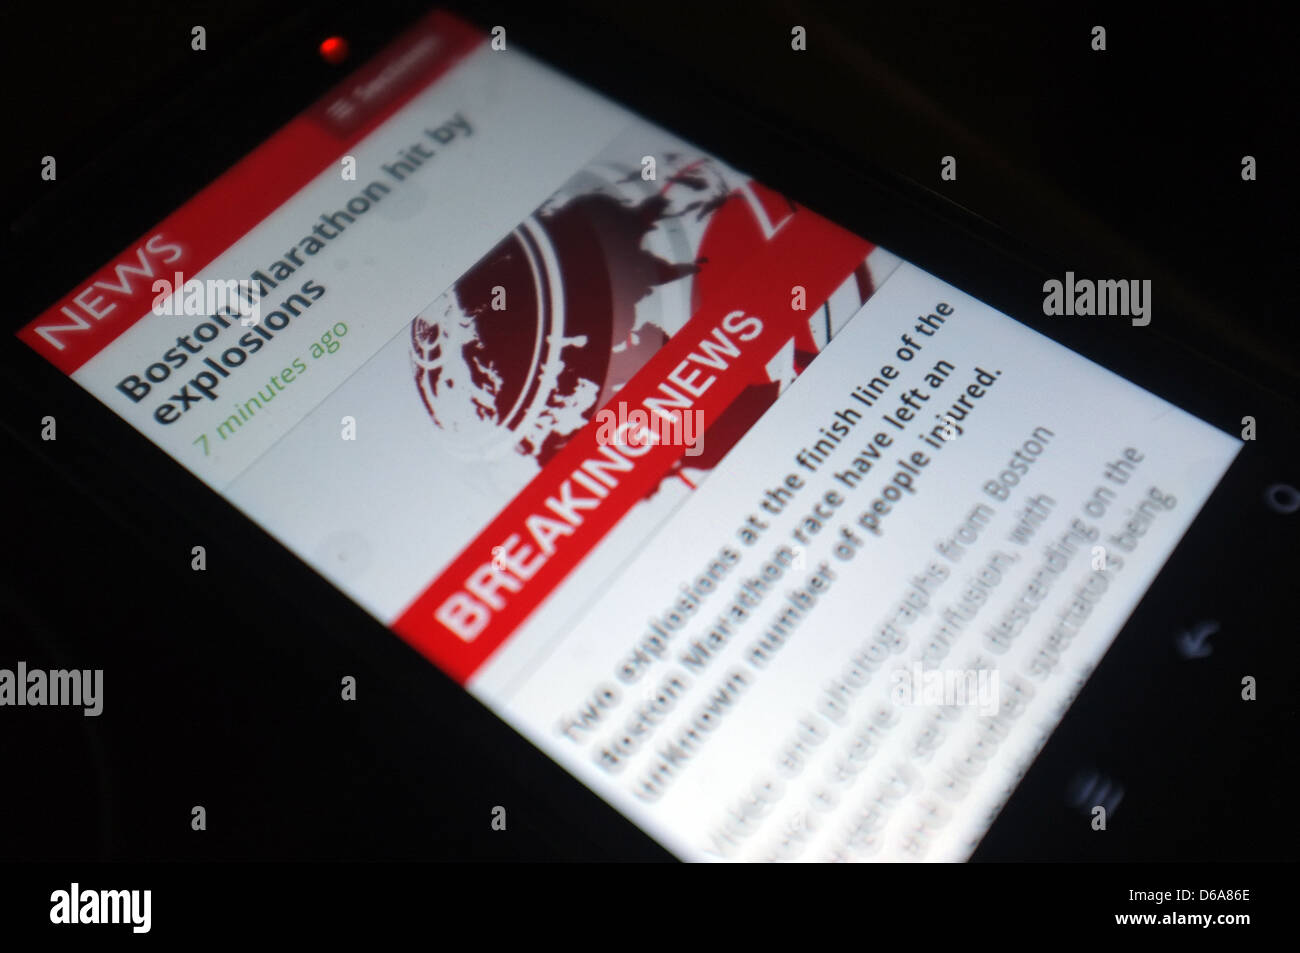 A mobile phone screen showing the tweets following the explosions that hit the Boston Marathon on the 15th April Stock Photo